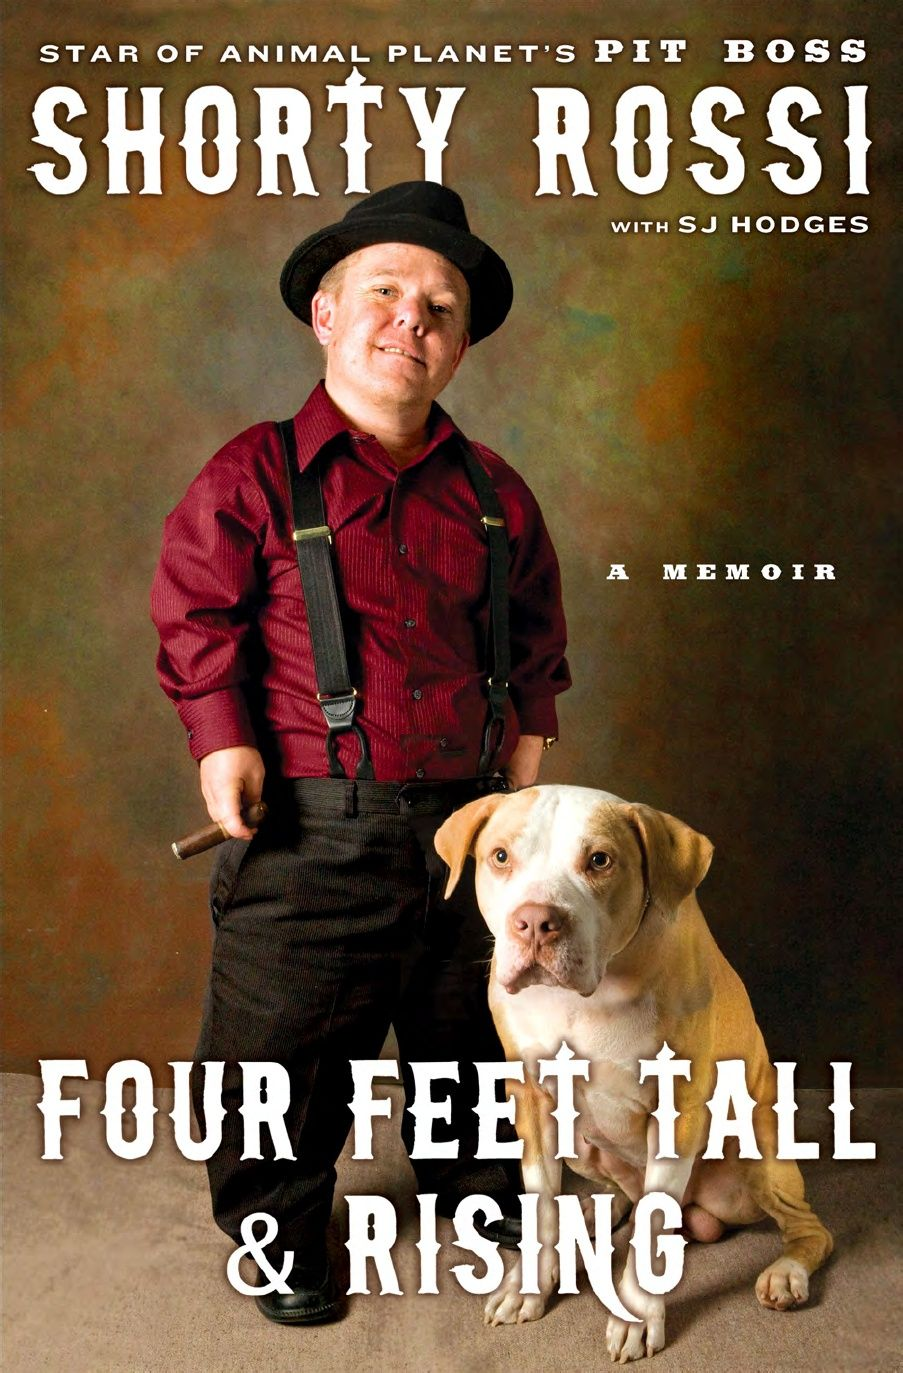 the tough-talking, fedora-wearing star of Animal Planet's hit show Pit Boss